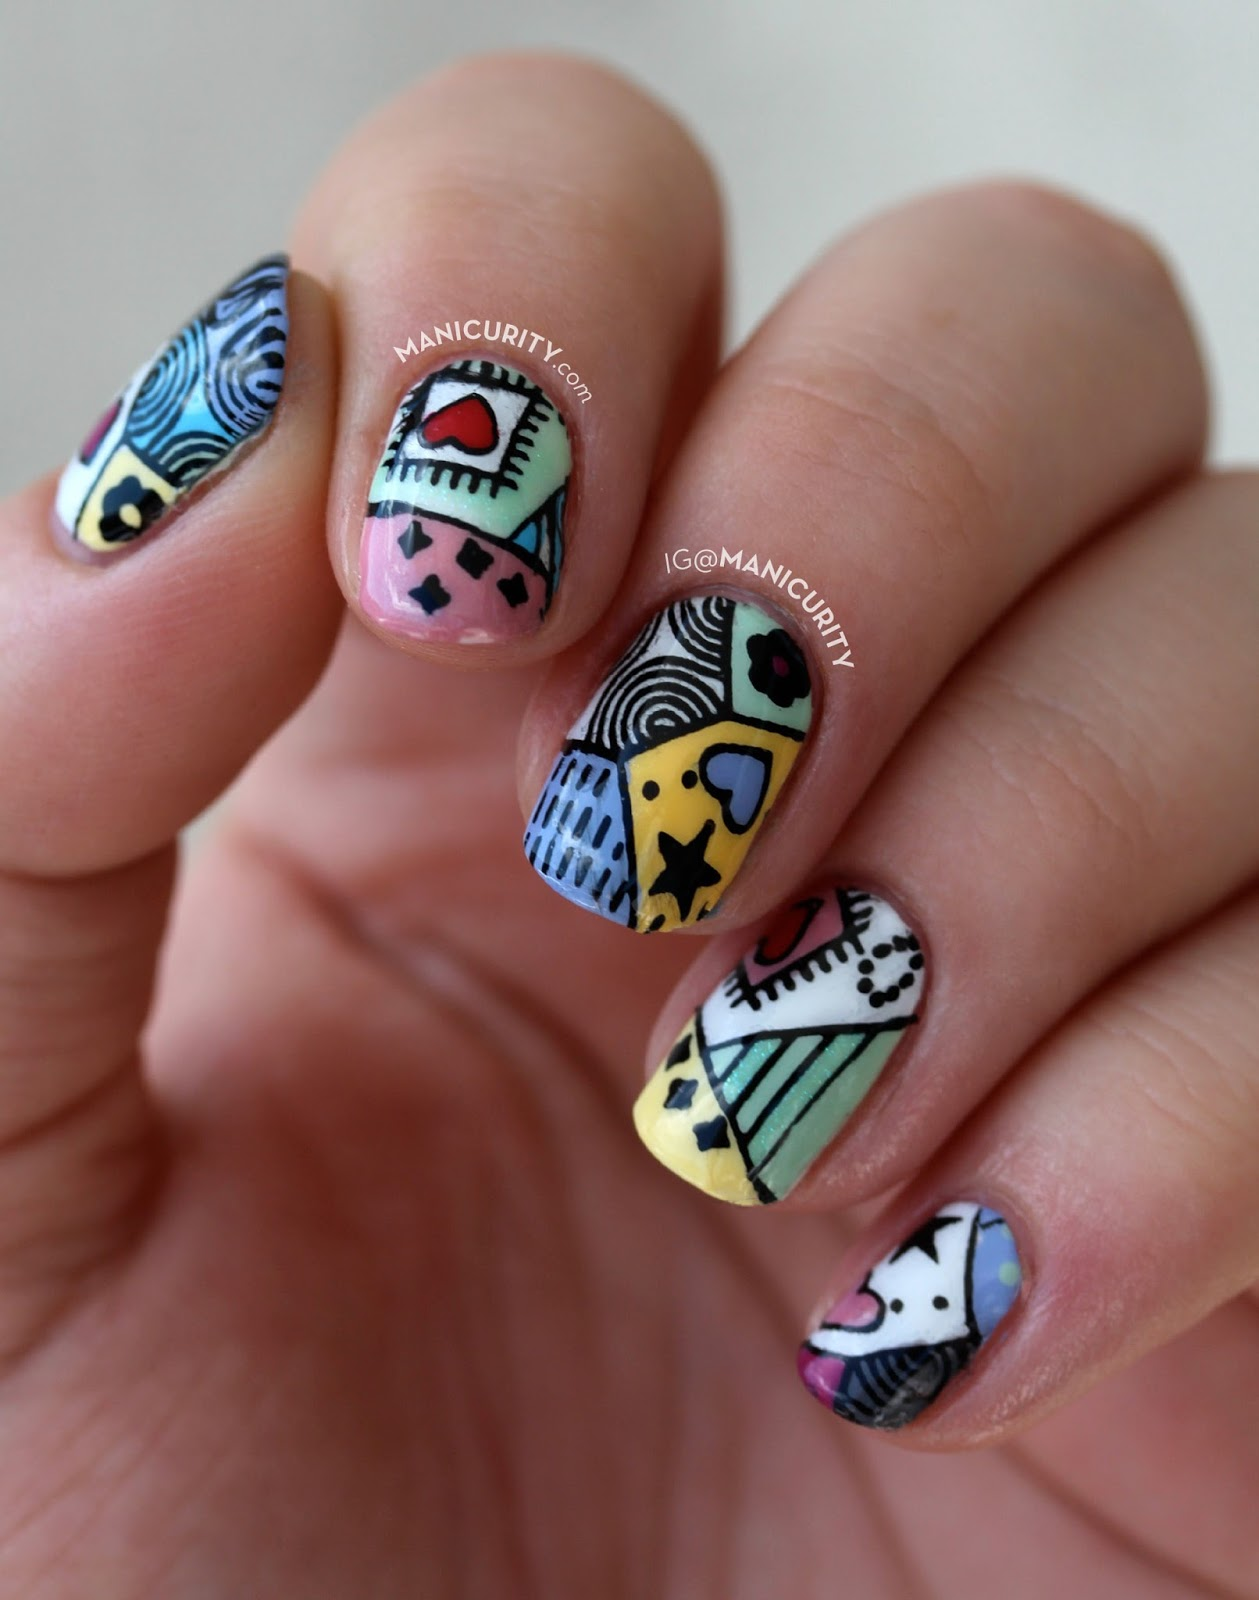 The Digit-al Dozen does Cotton: A Patchwork Quilt-Inspired Manicure using DIY Stamping Decals | Manicurity.com @emmathea